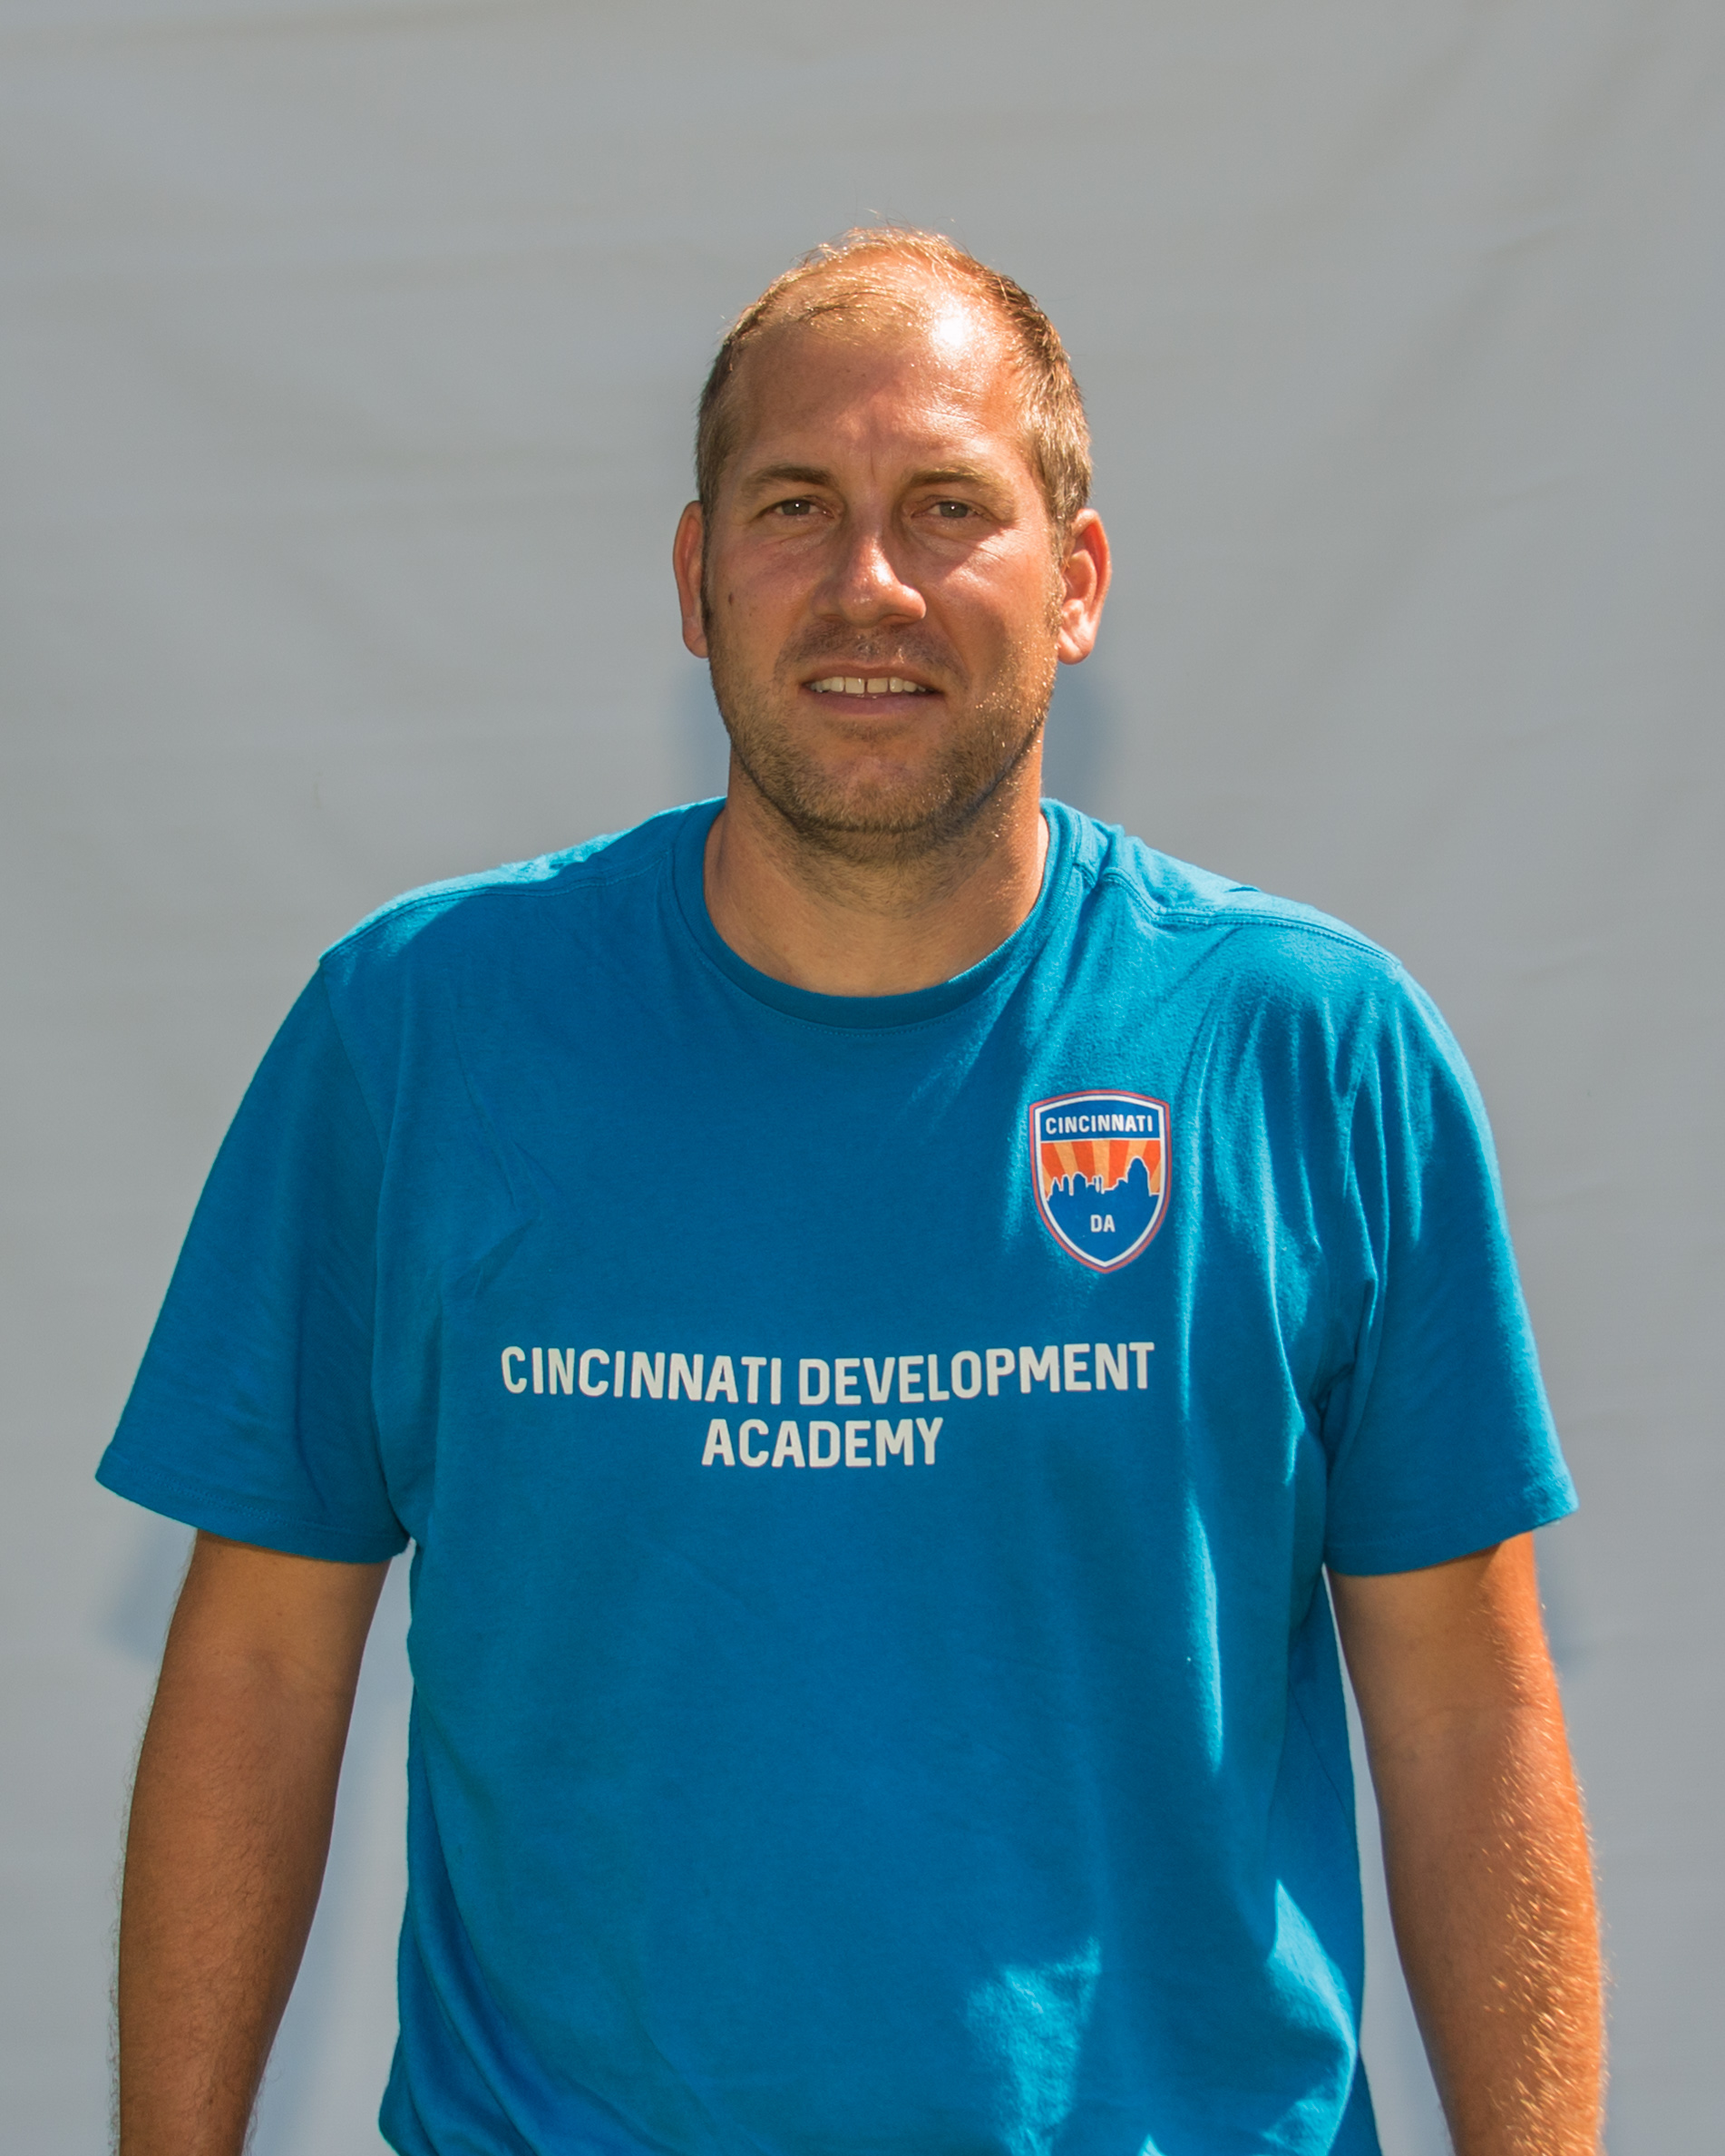 Cincinnati Development Academy - 2000/2001 Head Coach